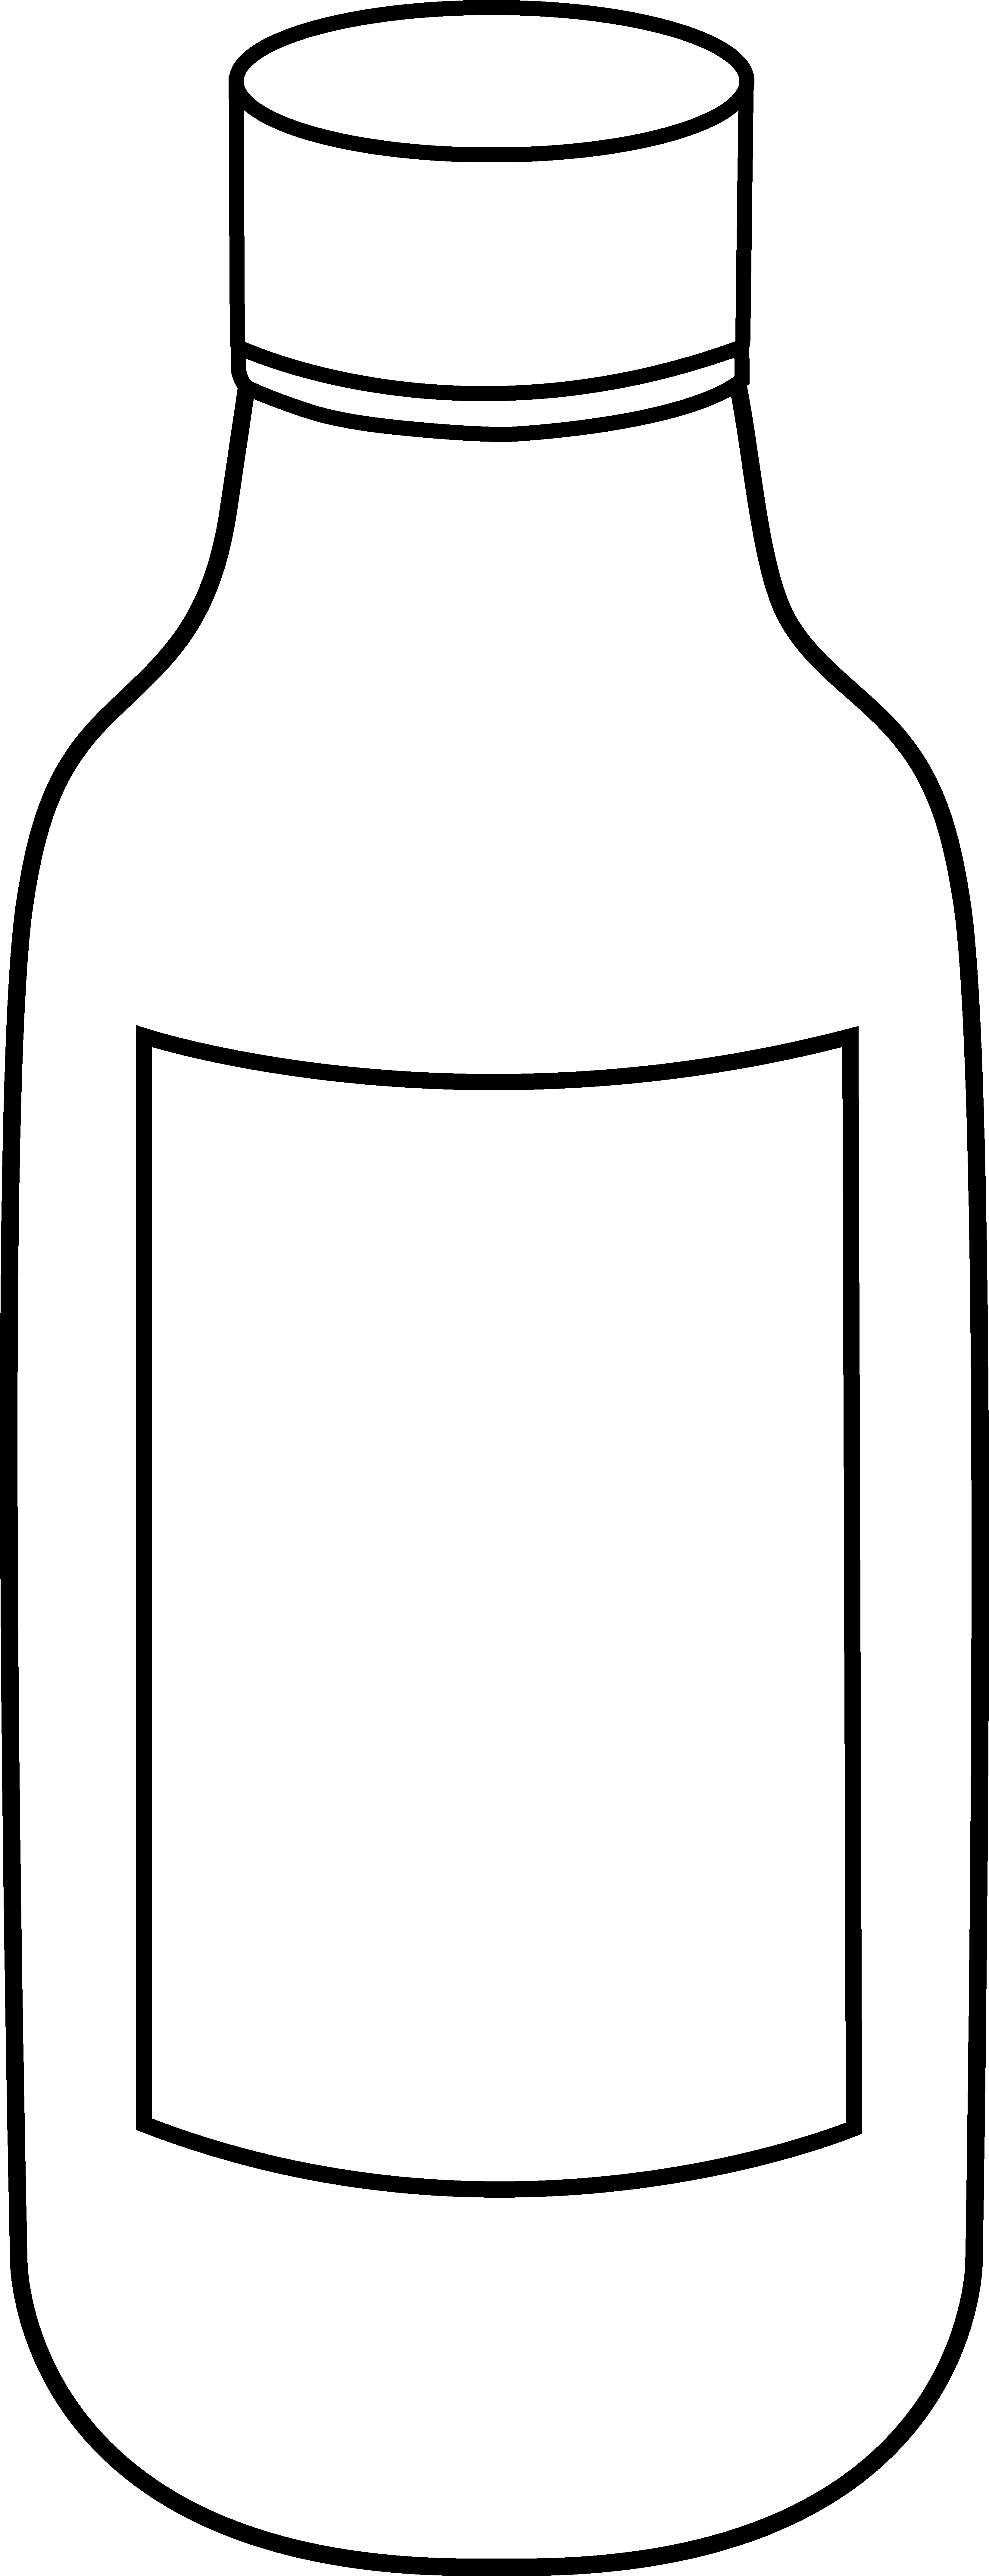 Bottle clipart black and white picture freeuse stock Free Bottle Cliparts, Download Free Clip Art, Free Clip Art on ... picture freeuse stock